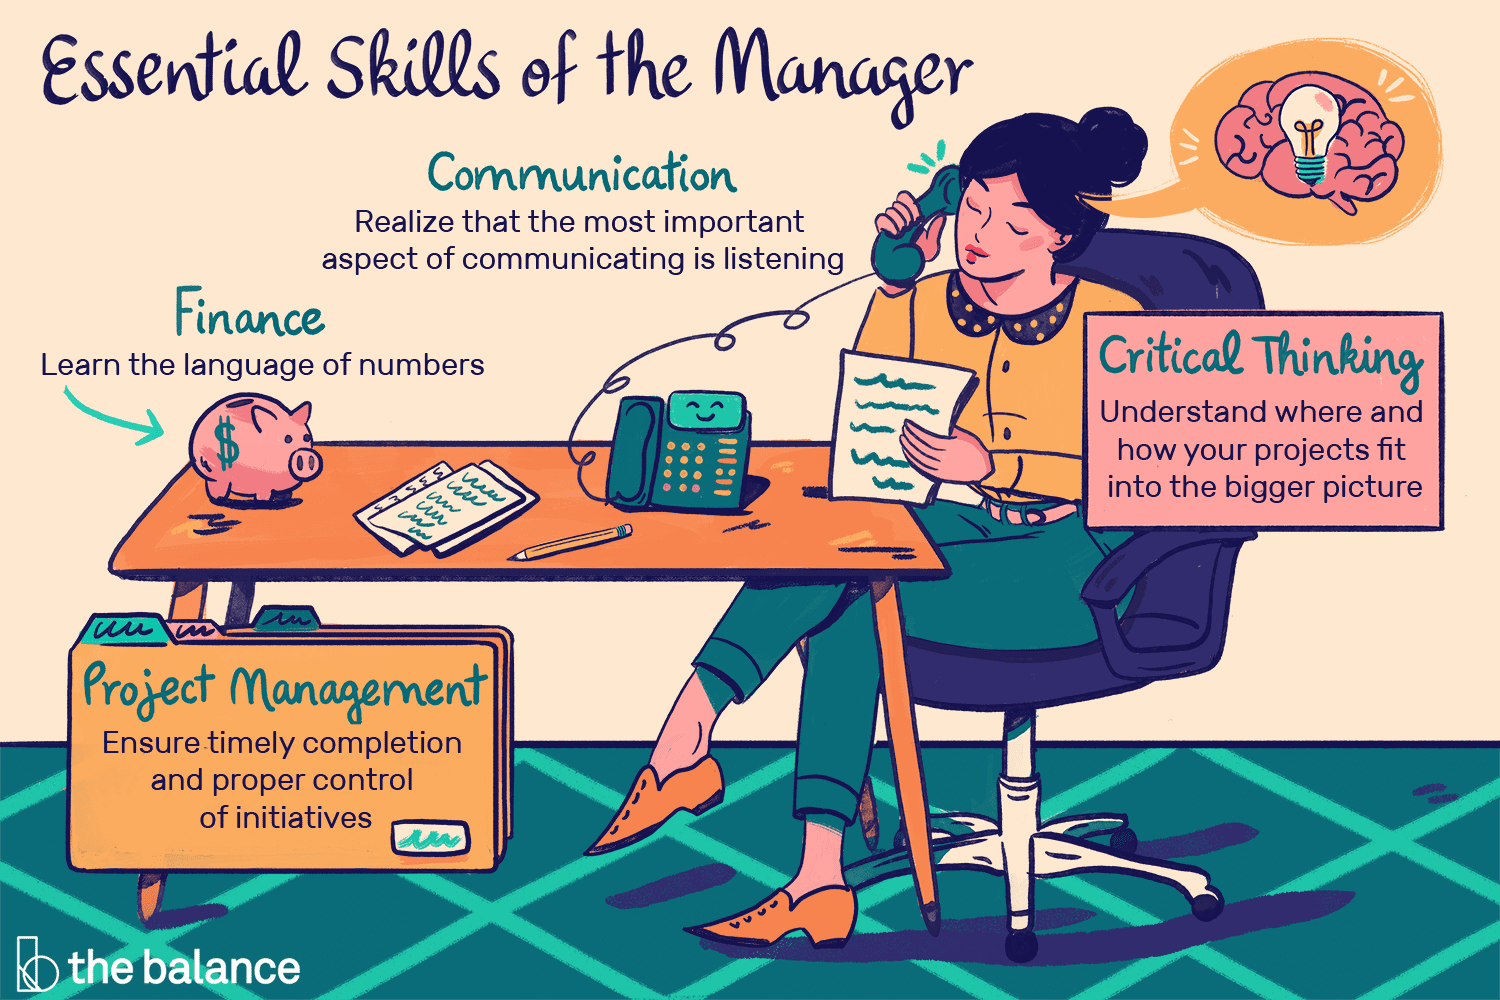 The Role and Responsibilities of a Manager